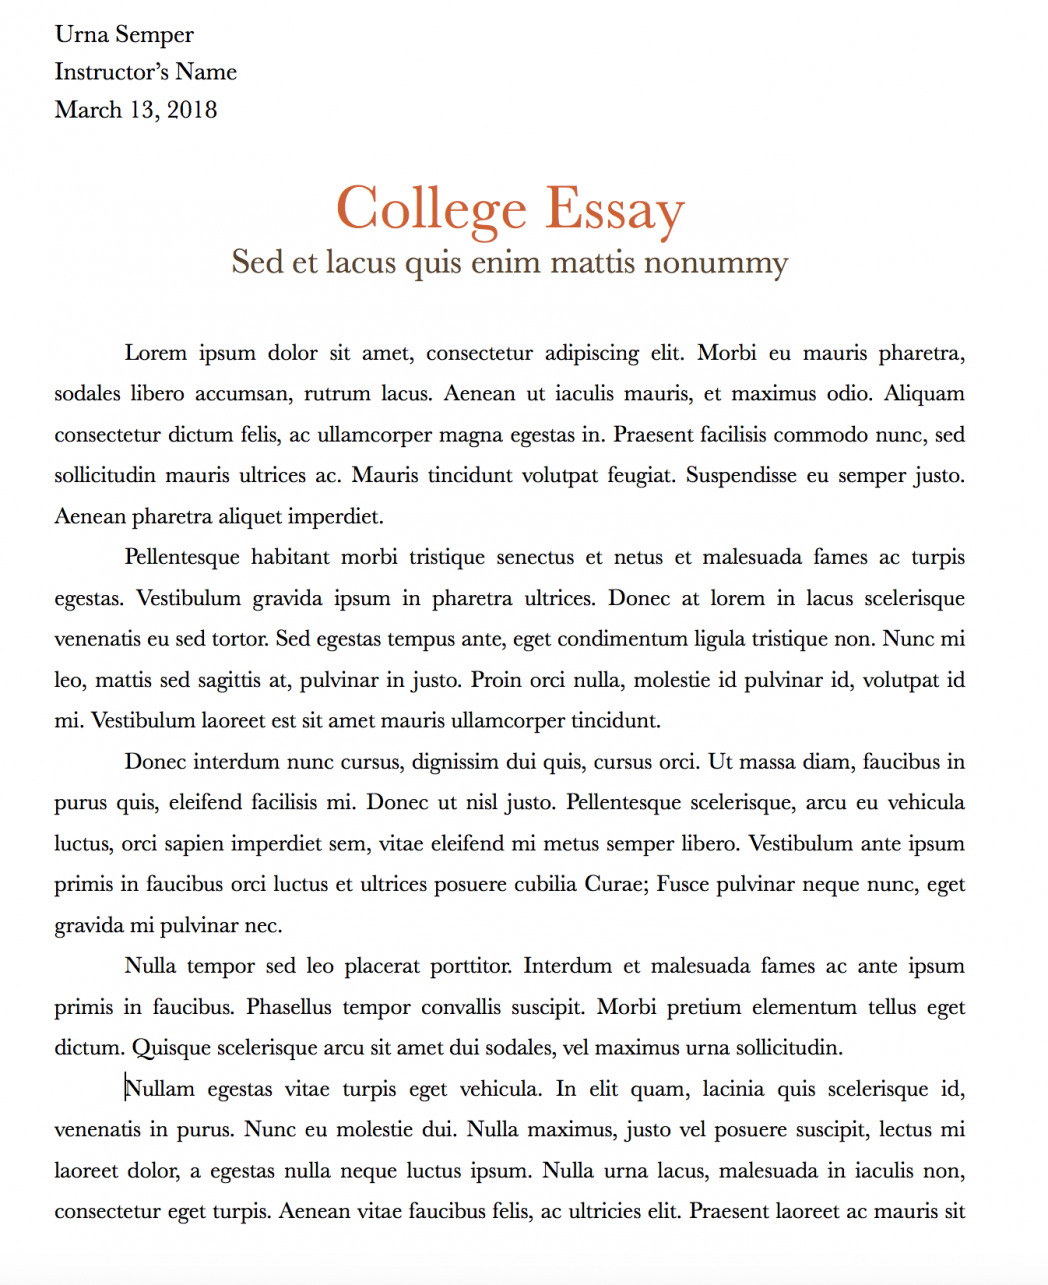 002 Essay Example How To Start Off An Write Interesting And Captivating College Examples Ctwrvkoshcimzkxyhyl8 With Parag Scholarship About Yourself Excellent Introduction A Narrative Good Your Life Full